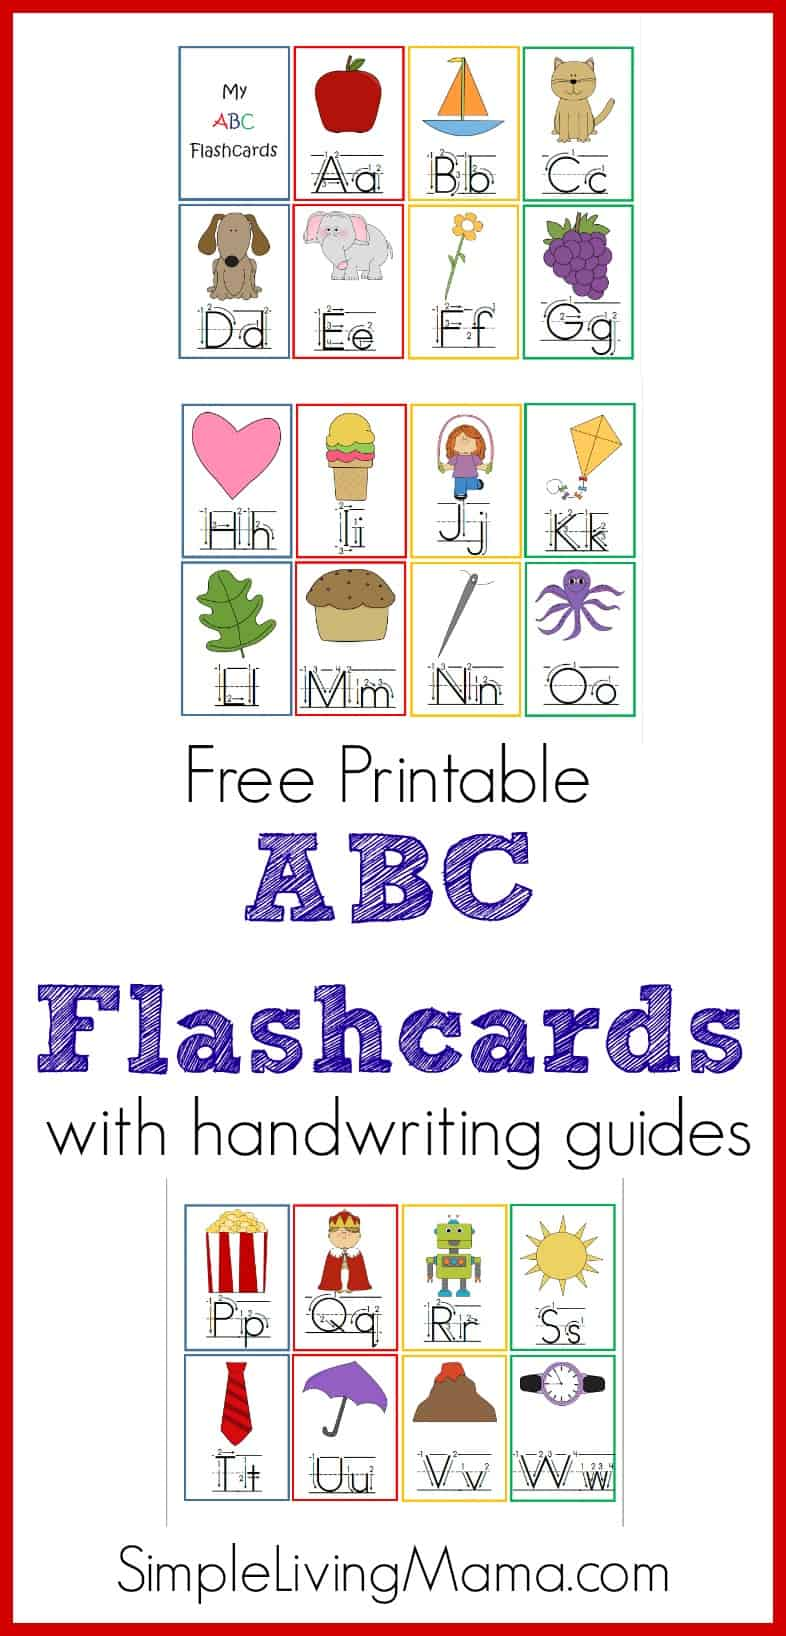 photo about Abc Flash Cards Free Printable known as Printable ABC Flashcards - Homeschool Printables for Free of charge